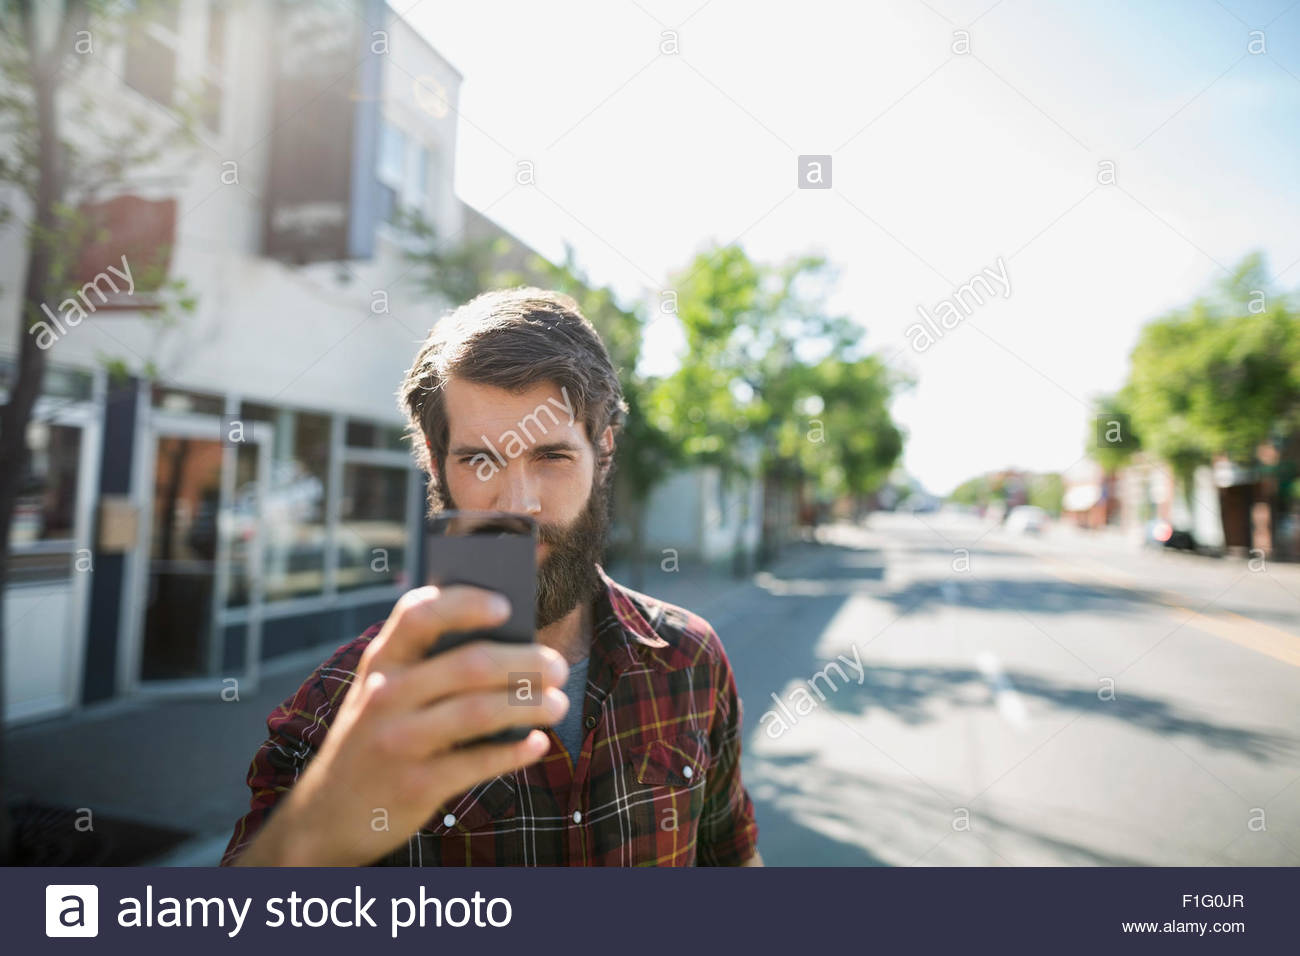 Bearded man photographing with camera phone sunny street - Stock Image